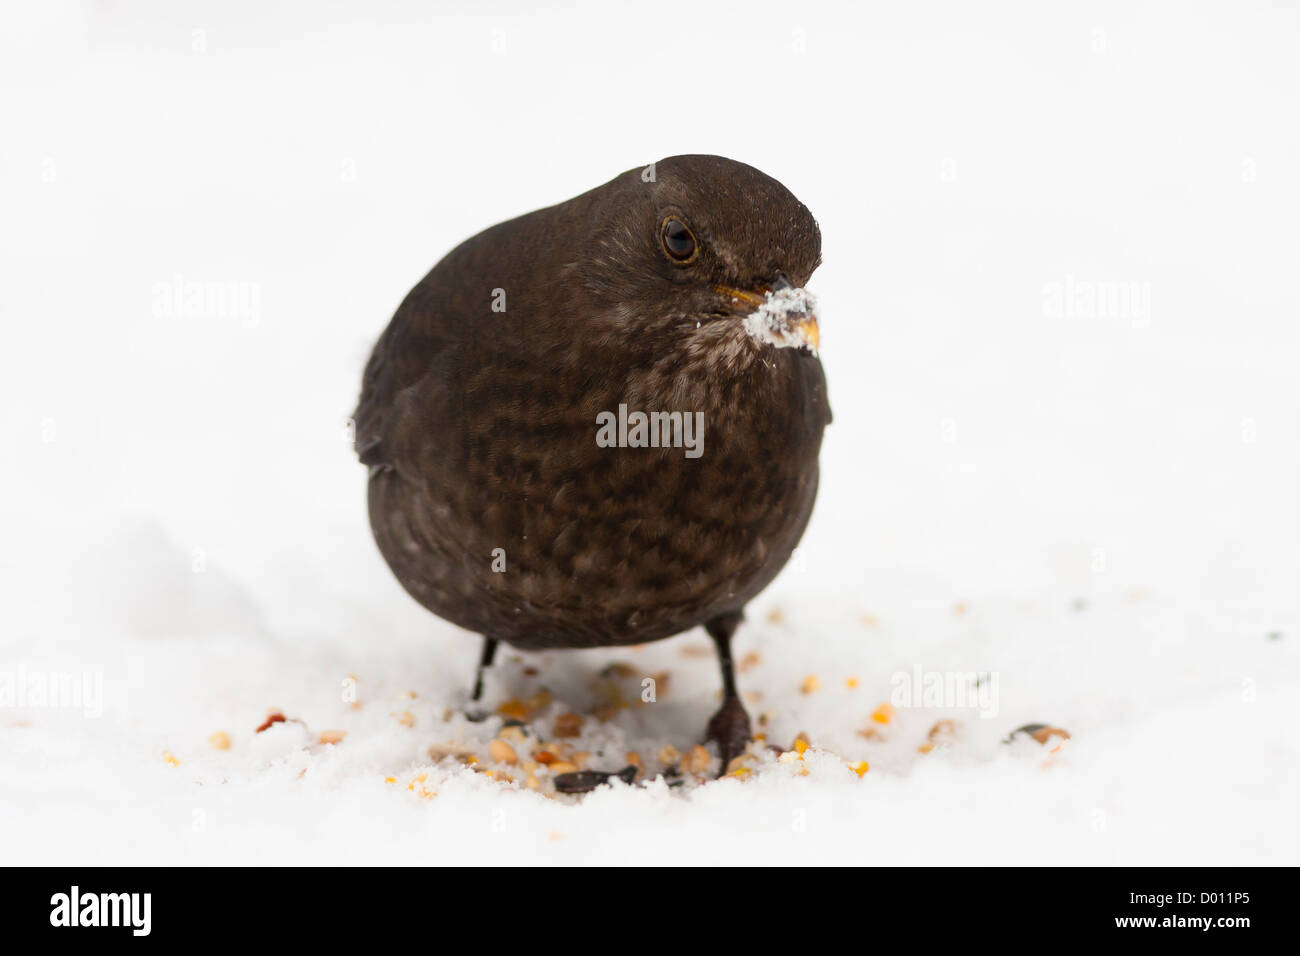 Blackbird female in snow with food and snowy beak - Stock Image